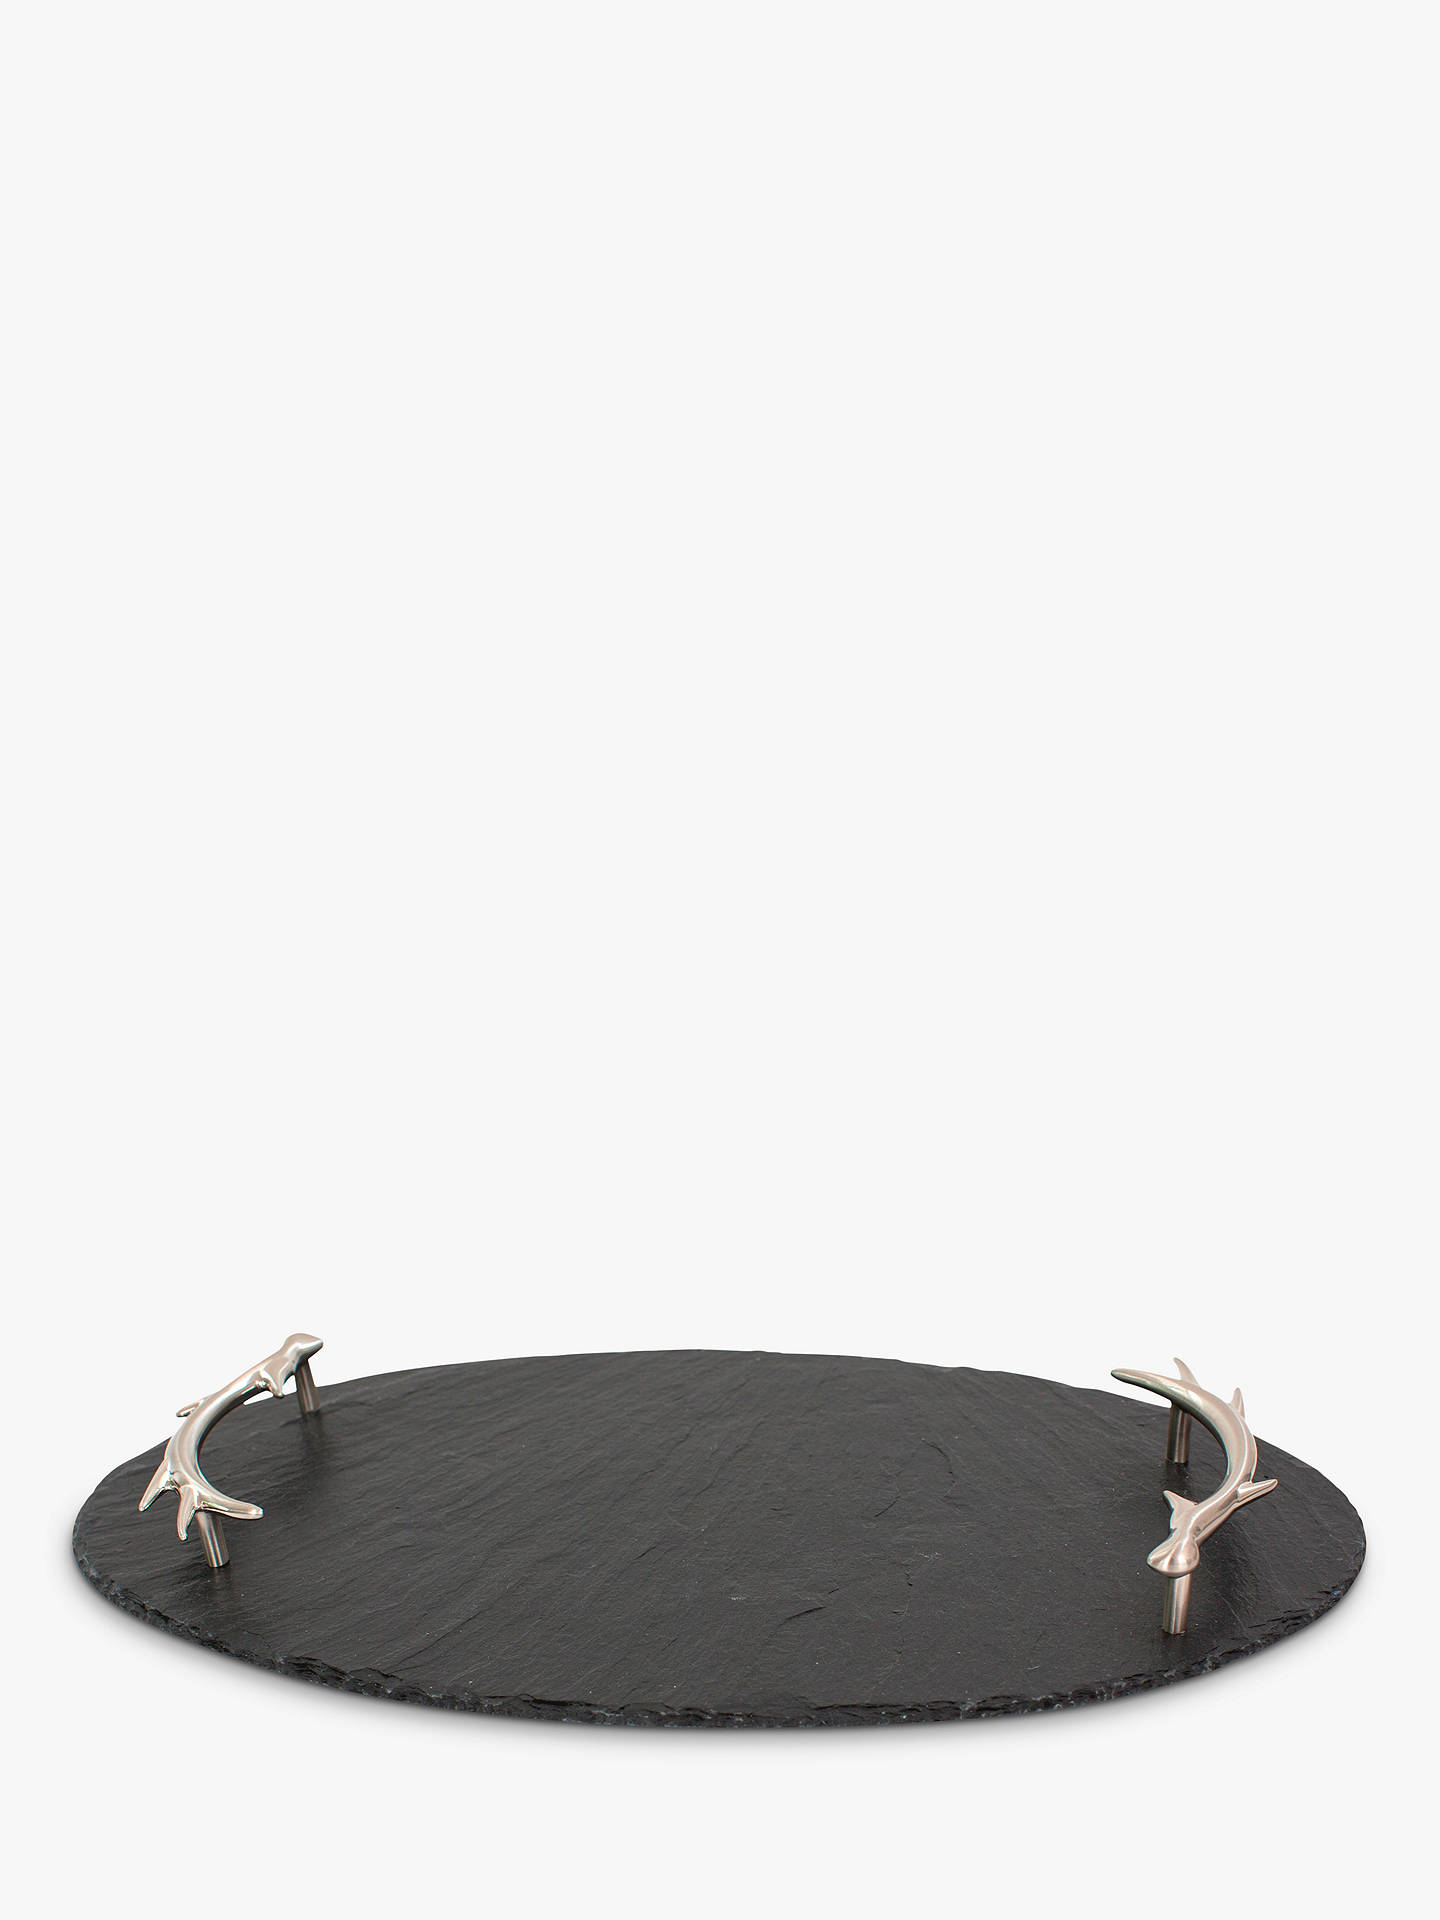 Buy The Just Slate Company Oval Slate Antler Tray, Black Online at johnlewis.com